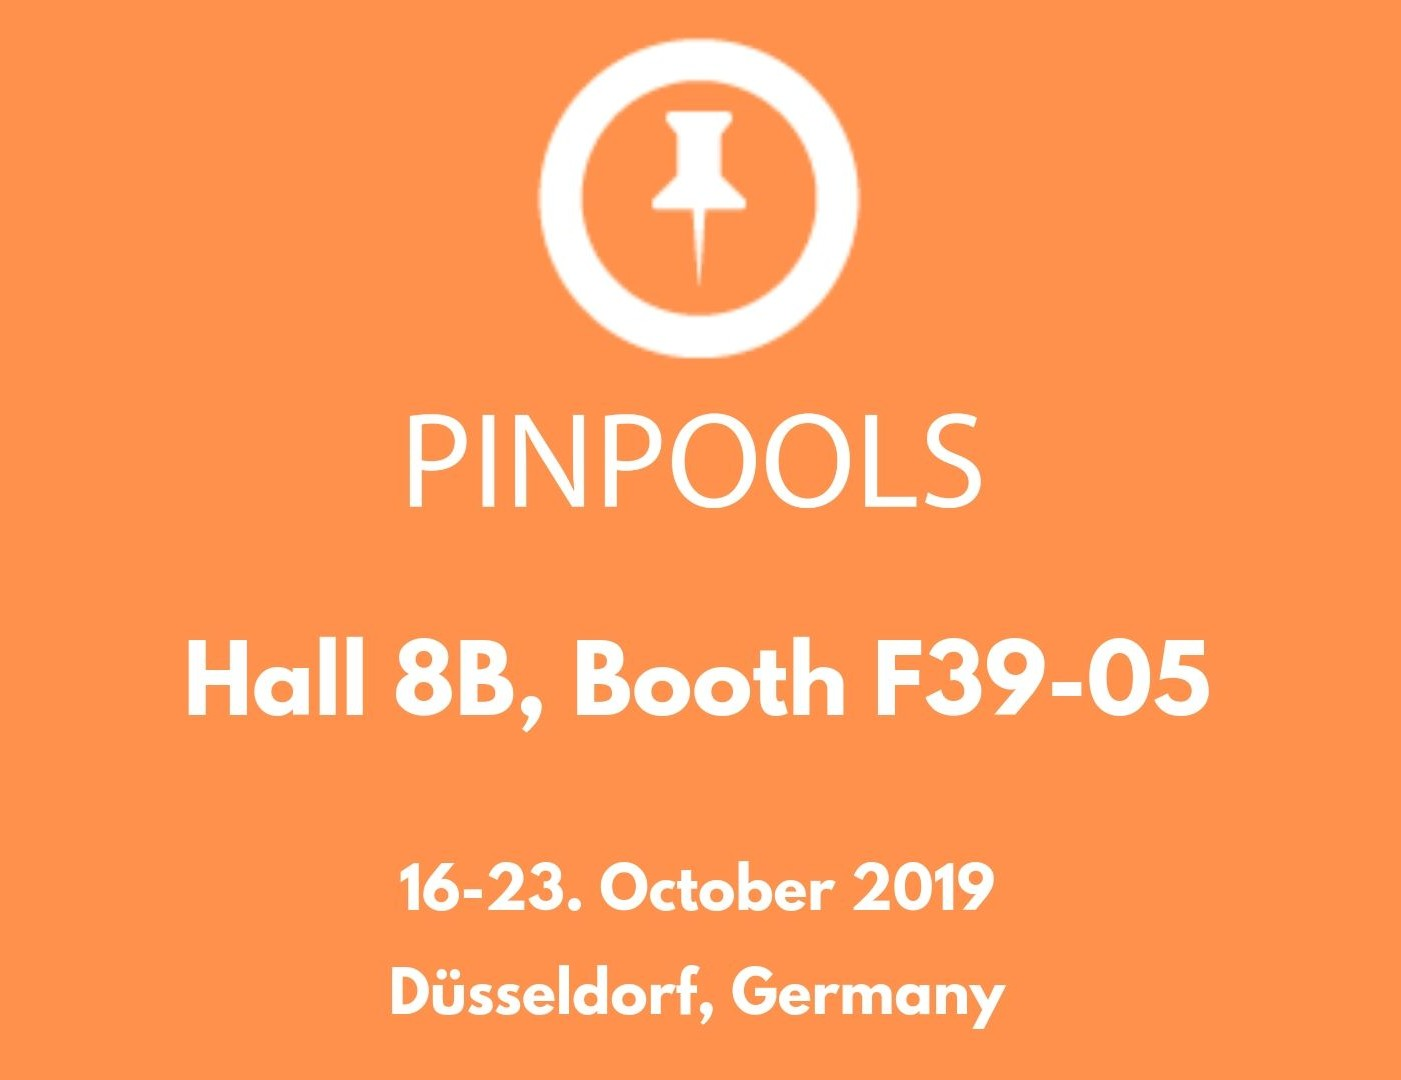 PINPOOLS in K2019 Fair